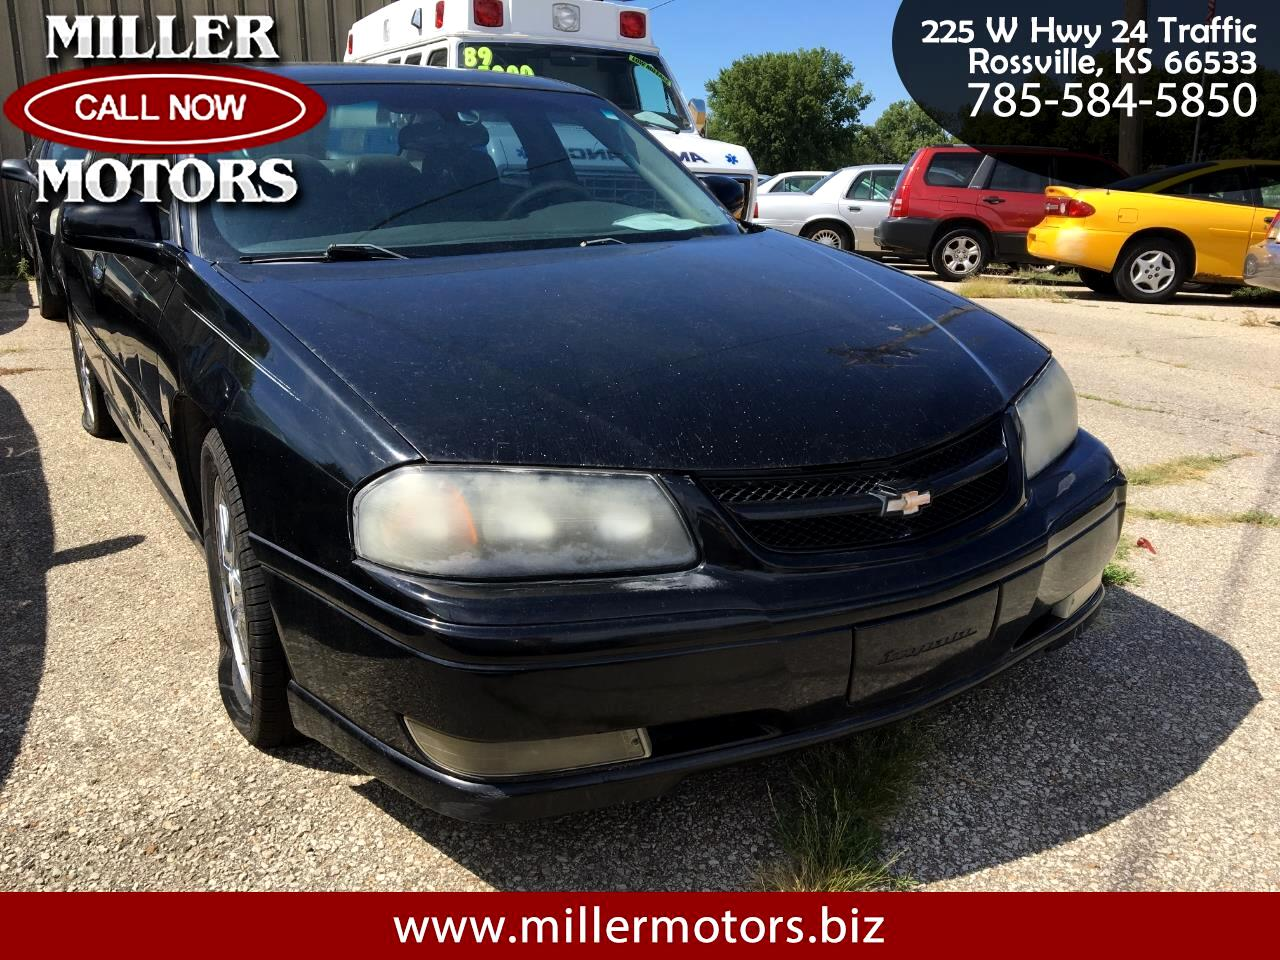 2005 Chevrolet Impala 4dr Sdn SS Supercharged